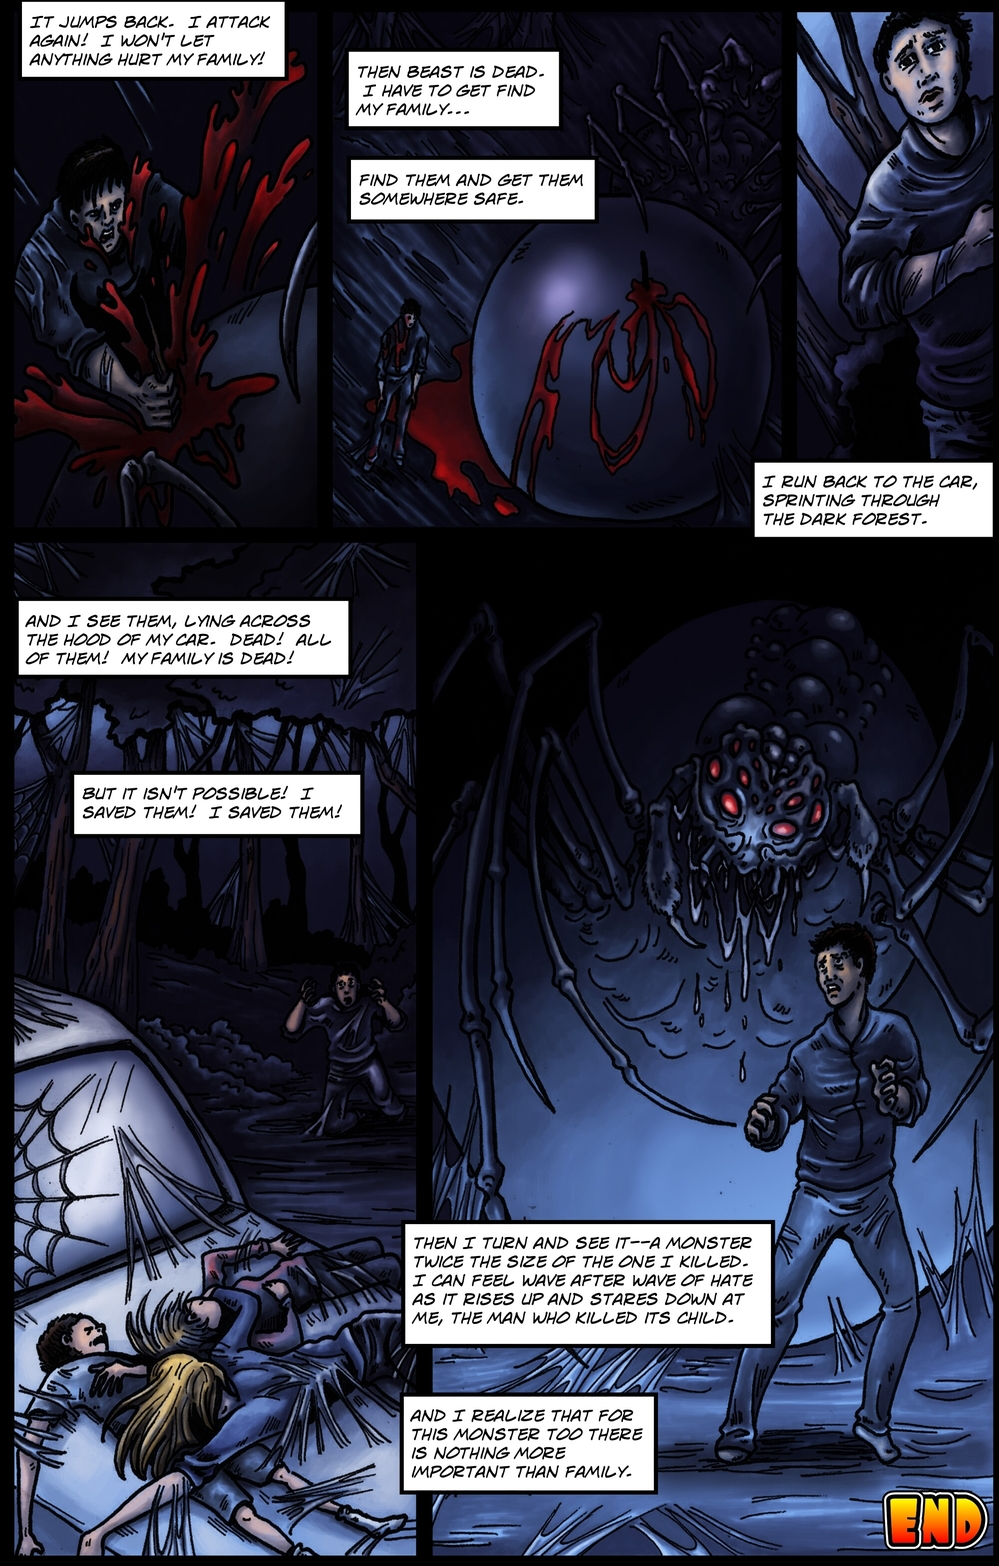 COCOON page 6 - story 9 in The Book of Lies